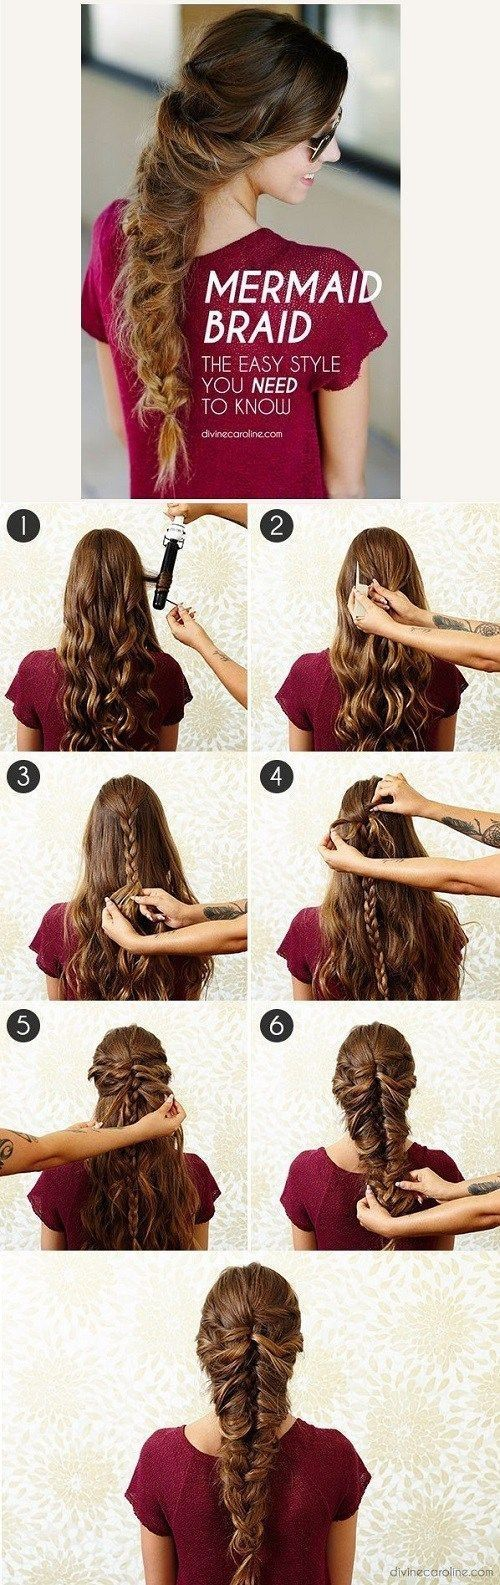 Hairstyle fast and easy long hair, 10 model hairstyles and instructions that inspires